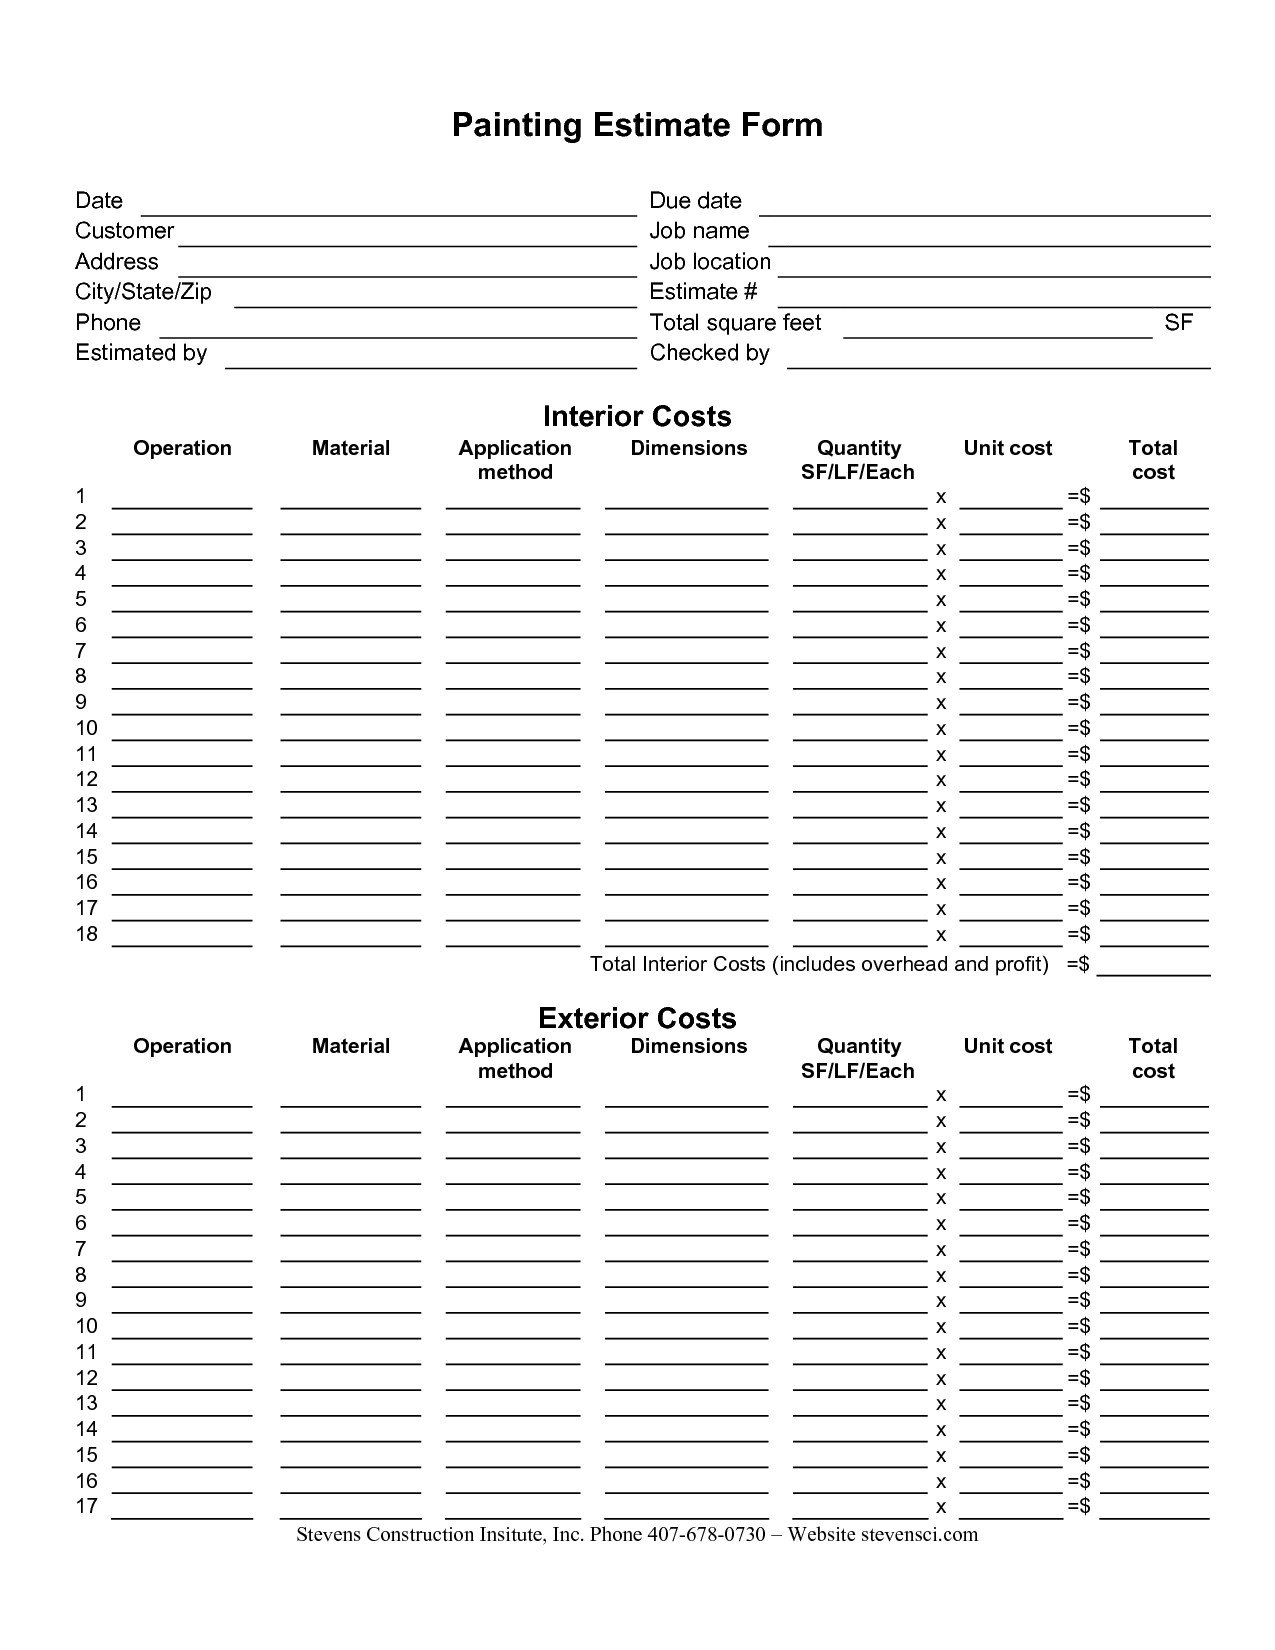 Painting Contract Template Free Download Painting Estimate forms